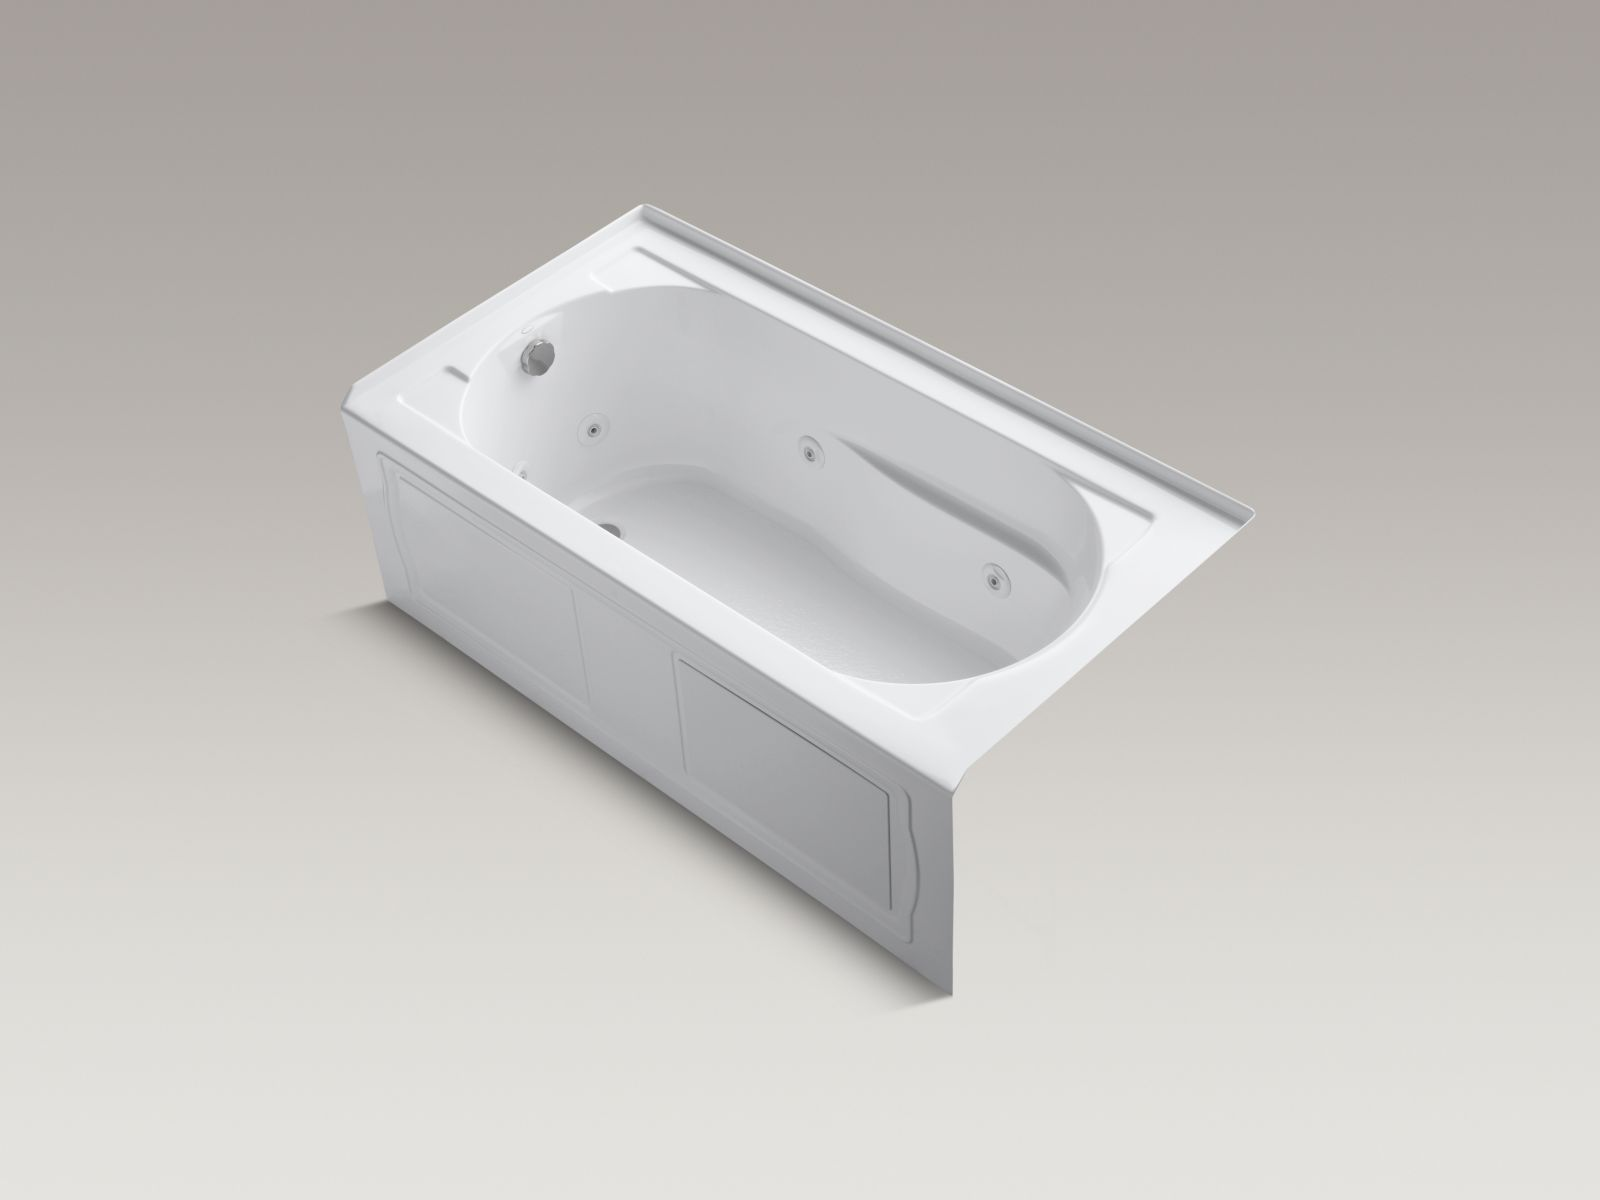 Kohler K-1357-LA-0 Devonshire 5' Whirlpool with Integral Apron and Left-hand Drain White